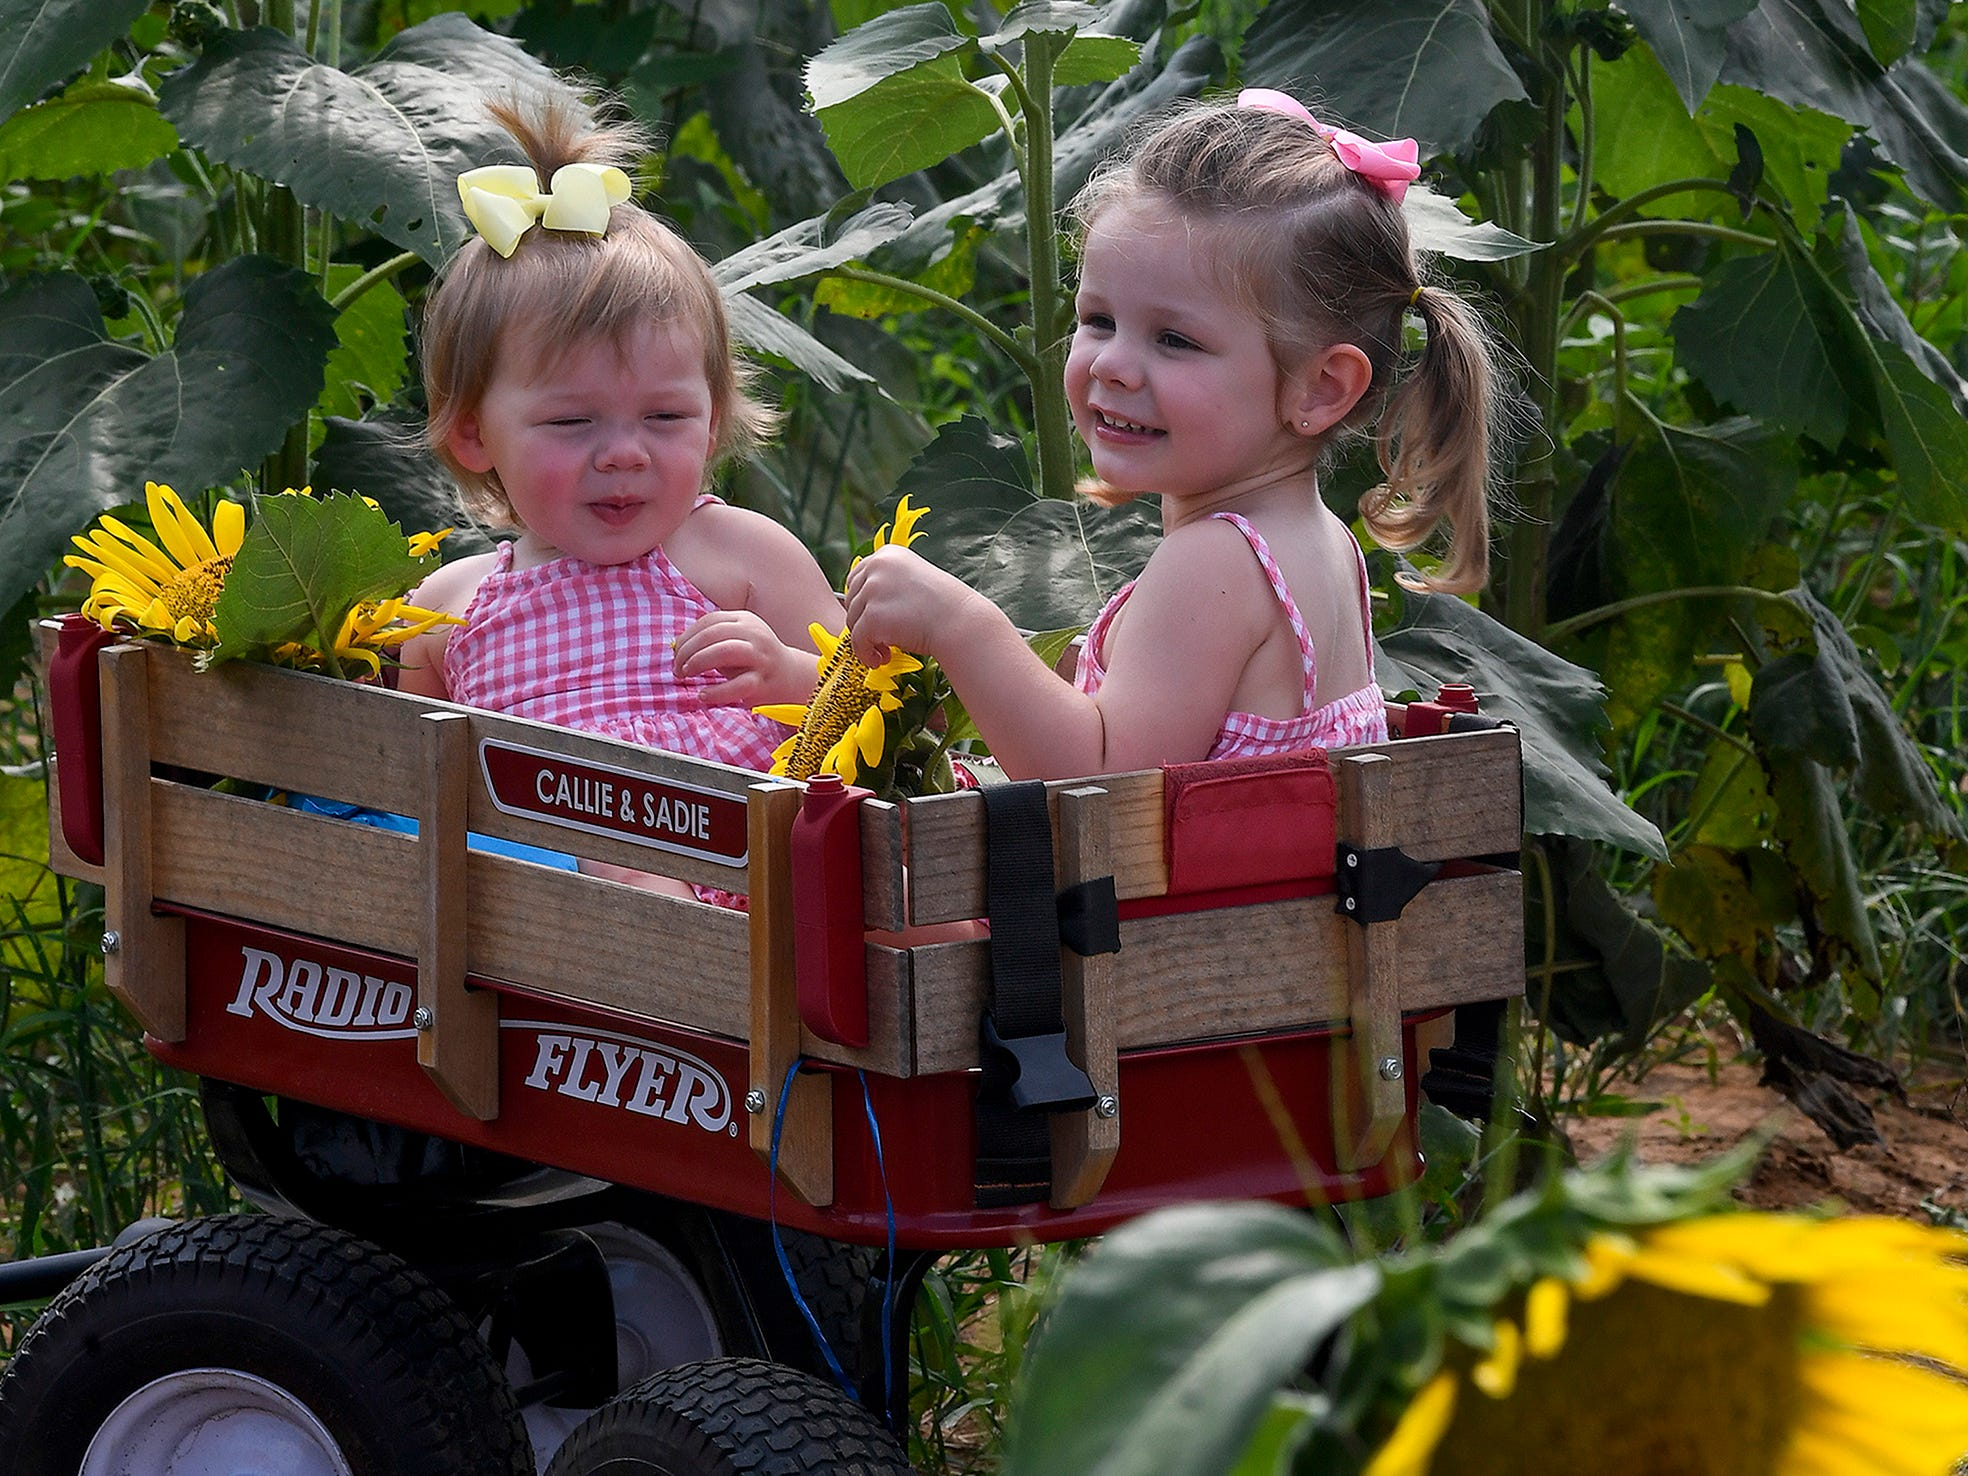 Sadie Young, left, and Callie Young pose for photos by their grandfather Mike Young in the Sheridan family sunflower field about five miles west of Autaugaville, Ala. on Monday August 13, 2018.